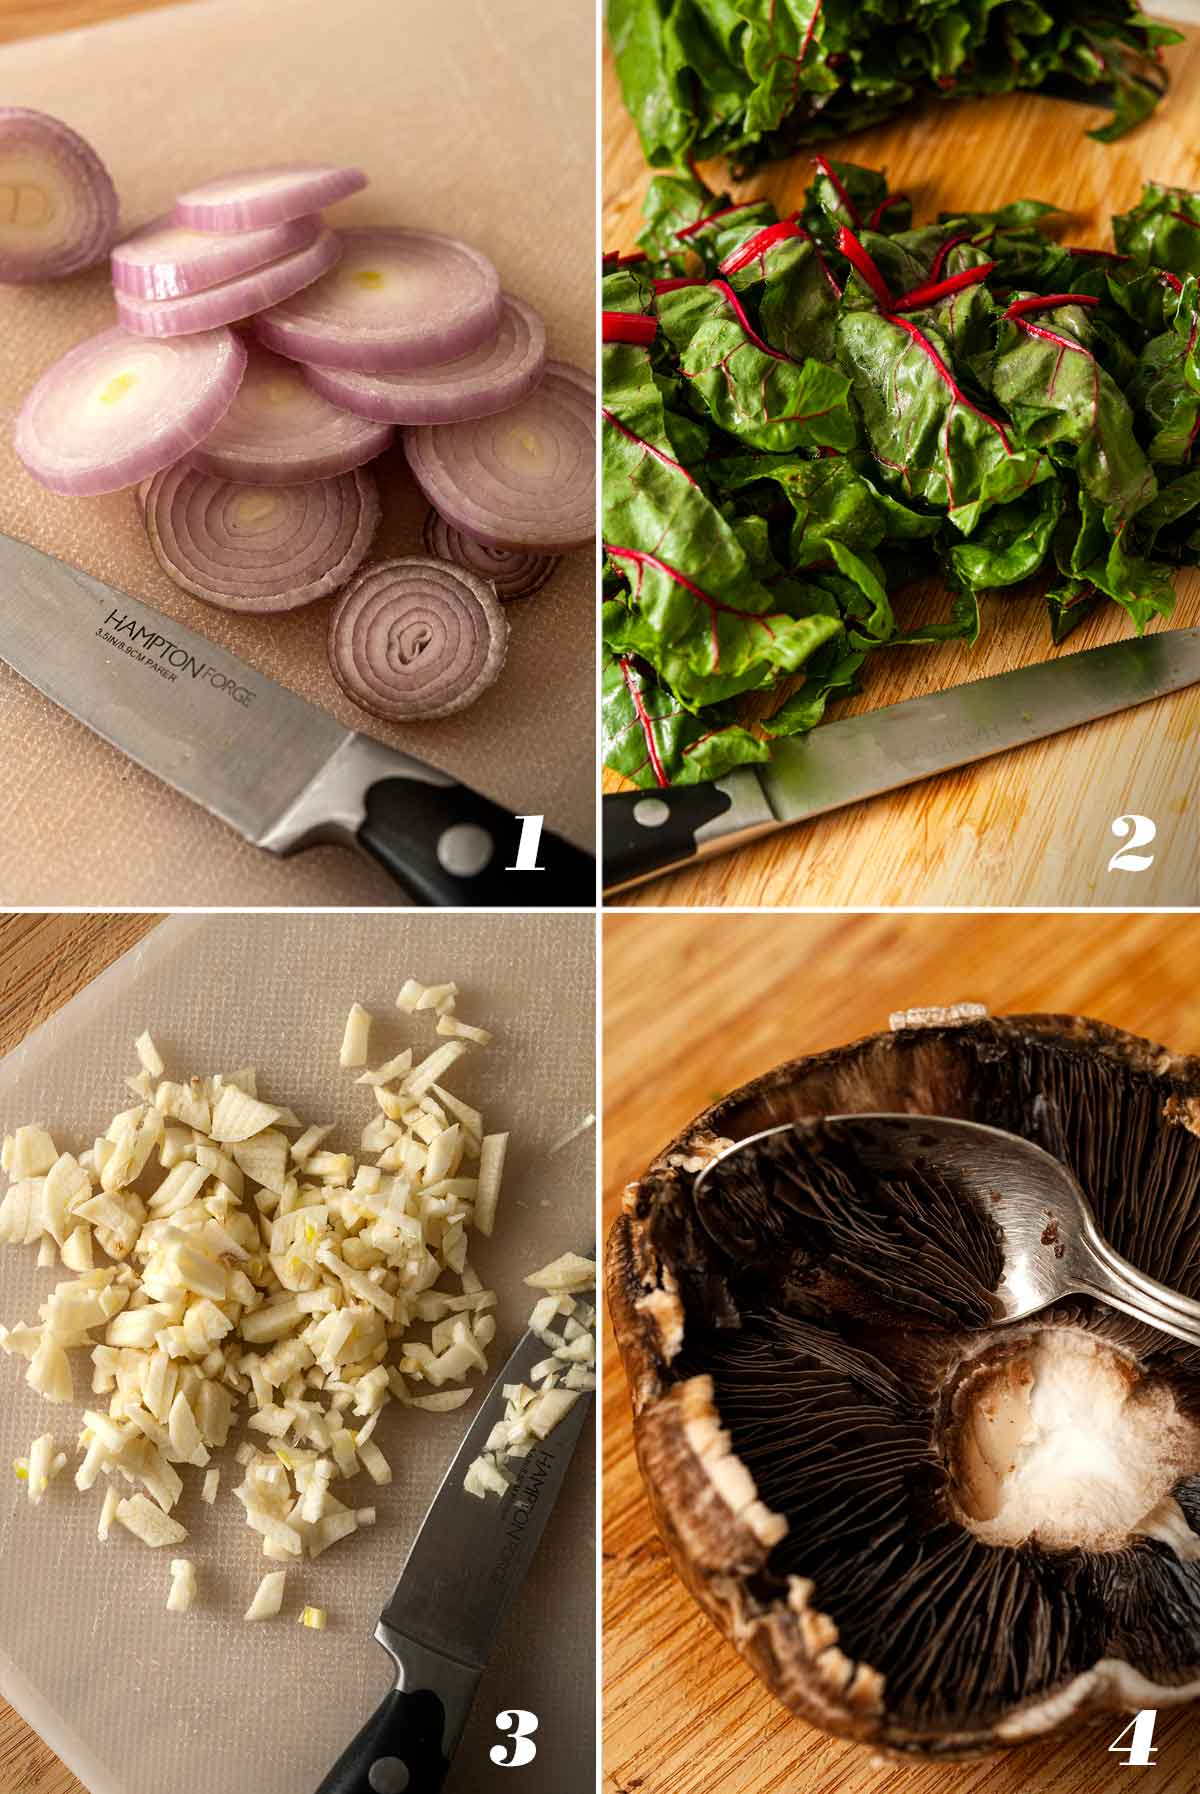 A collage of 4 numbered images showing how to prep vegetables for sautéing.